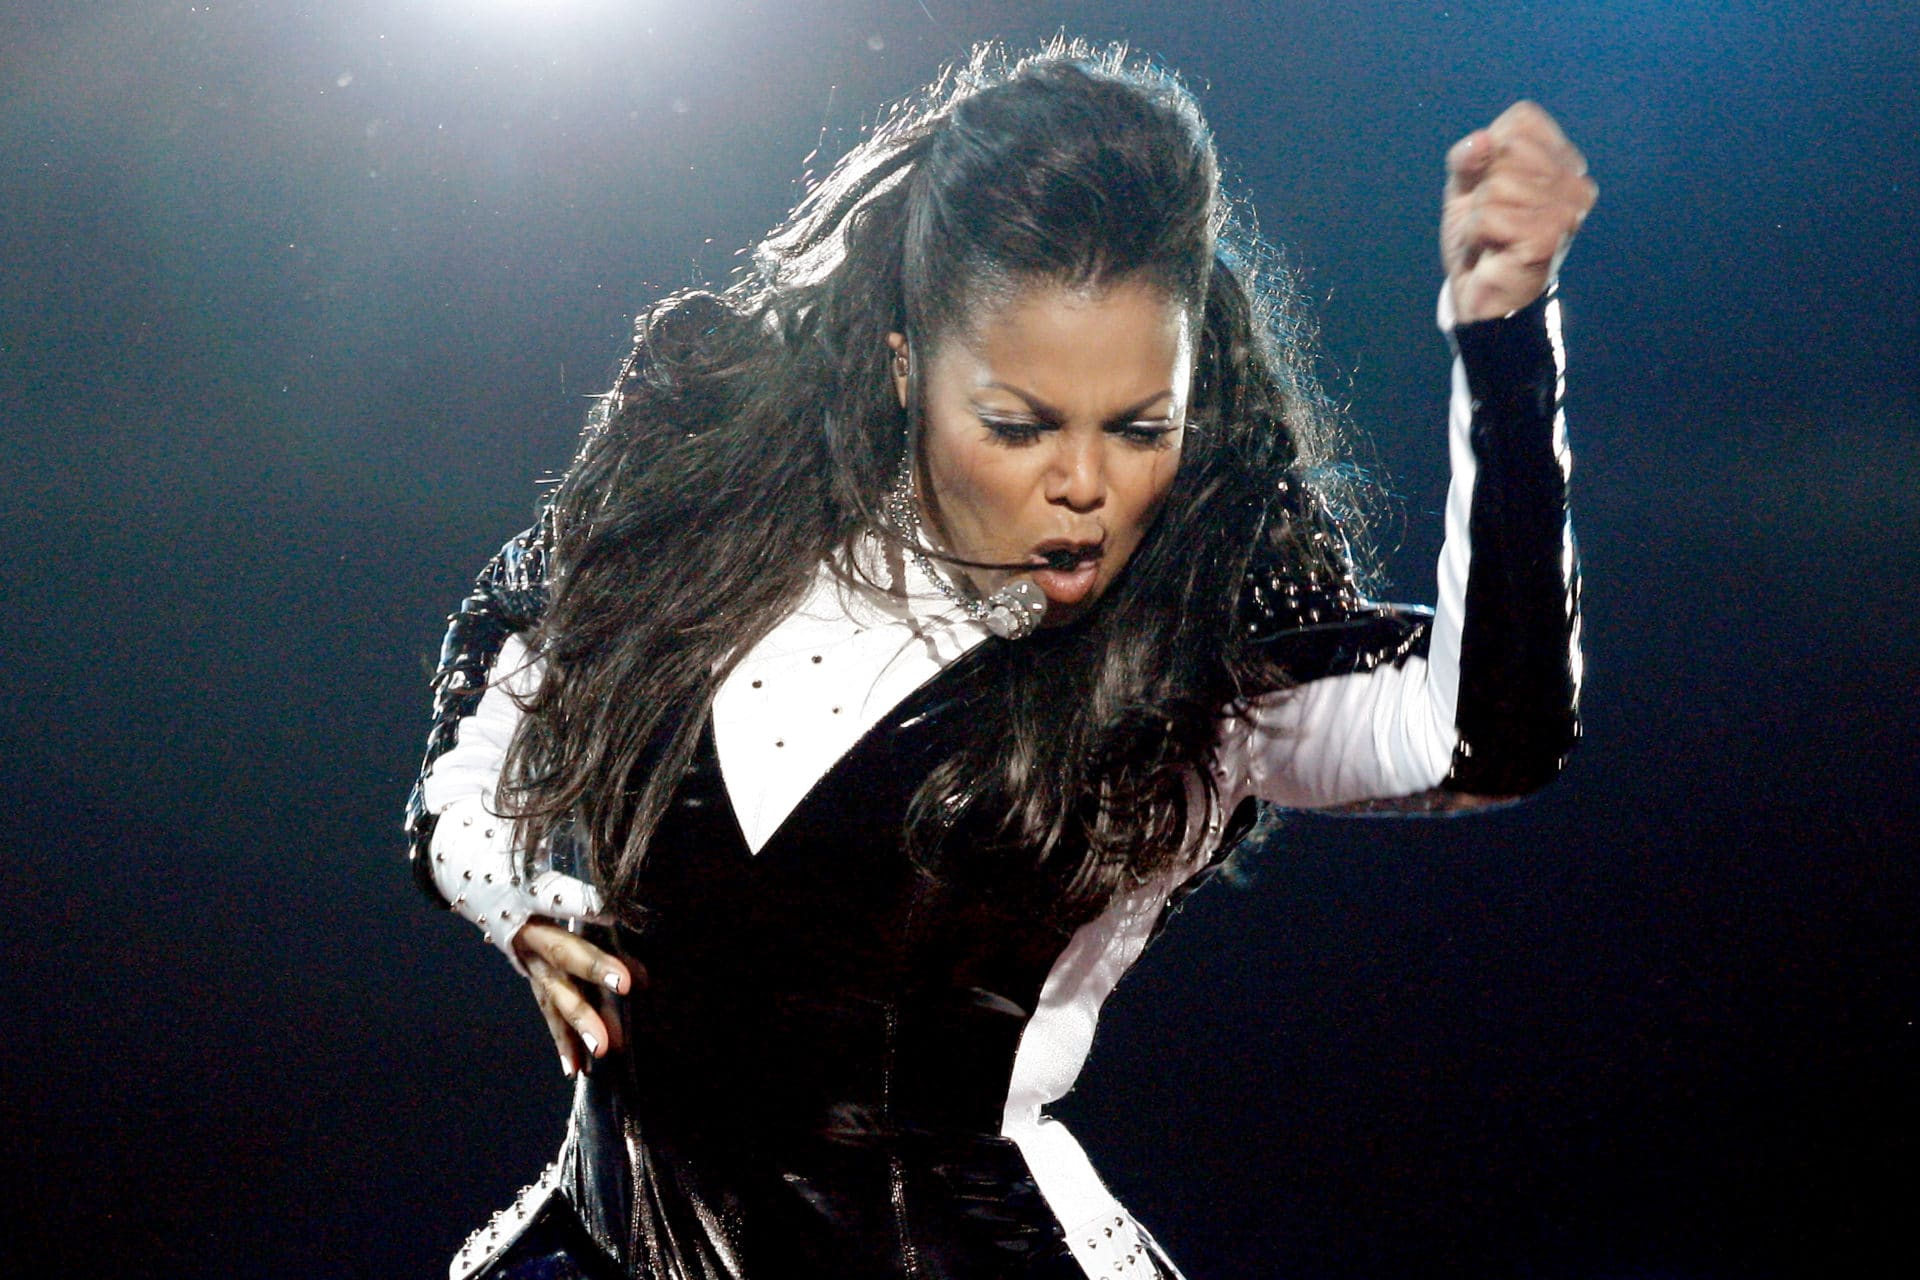 Glastonbury Tried To Play Janet Jackson In Their Lineup Poster But She Corrected It